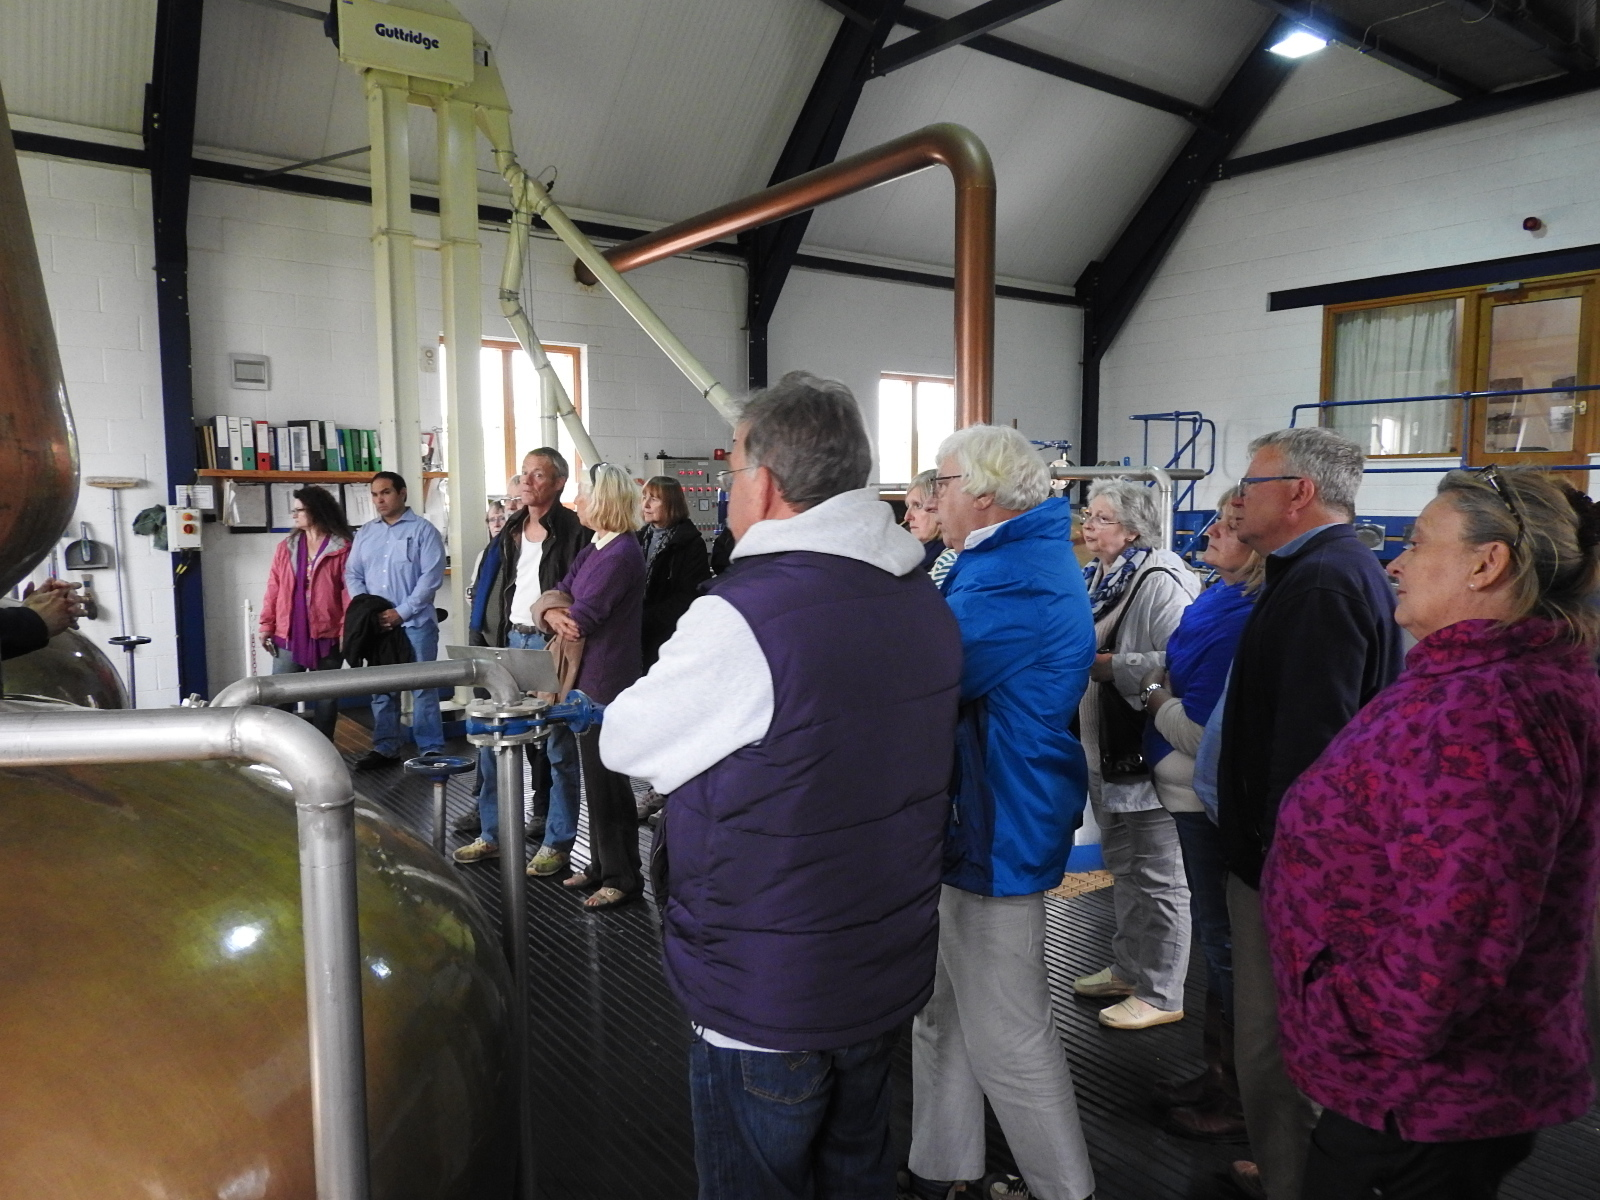 People listening to a man talking about whisky